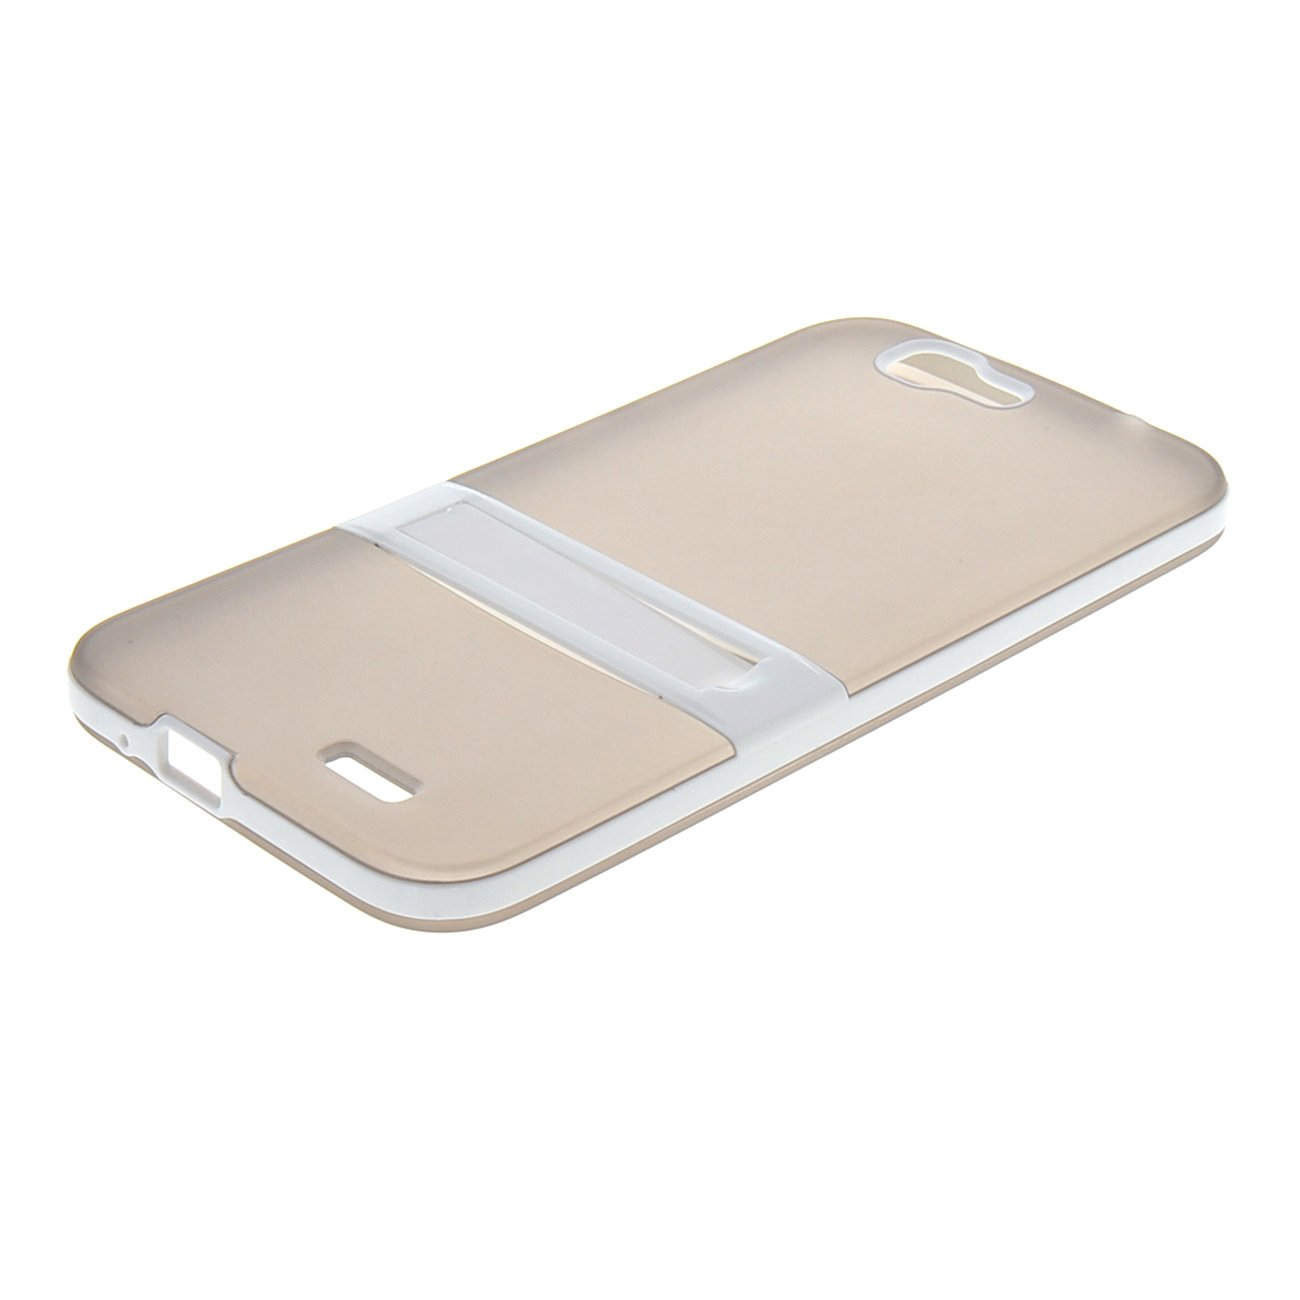 MOONCASE Huawei G7 Case Jelly Color Funda Carcasa TPU Gel Tapa ...